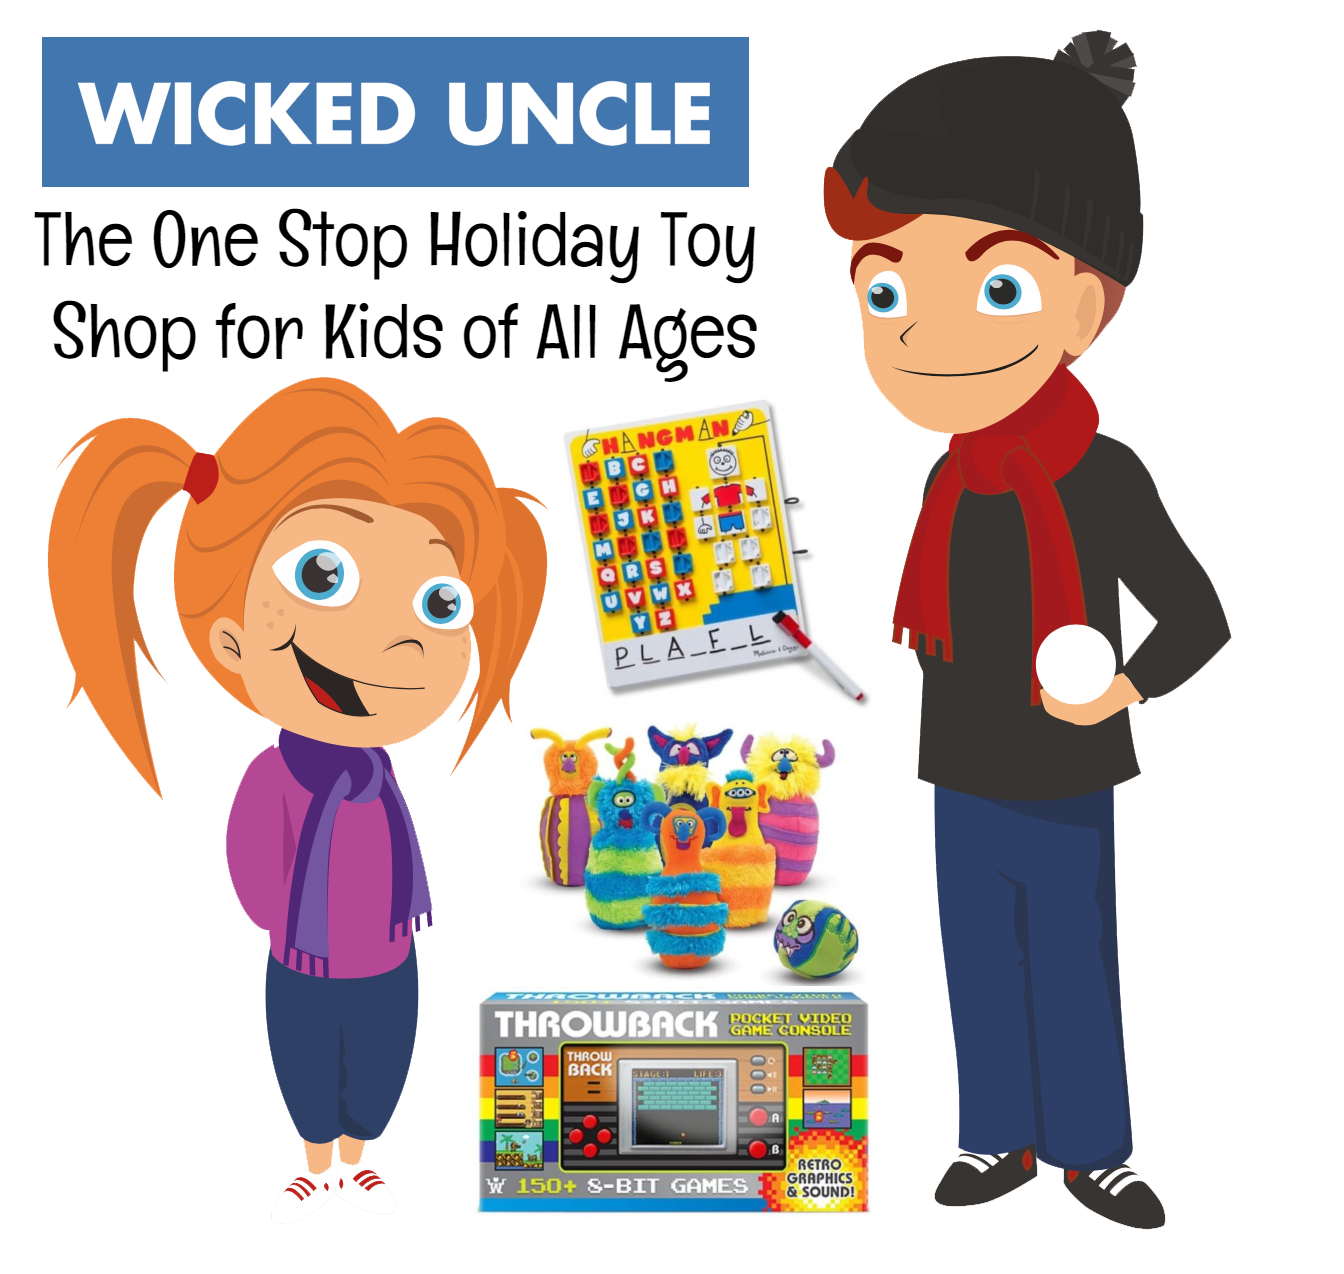 Wicked Uncle: The One Stop Holiday Toy Shop for Kids of All Ages | #WickedUncle #giftsforkids #giftideas #holidaygiftguide